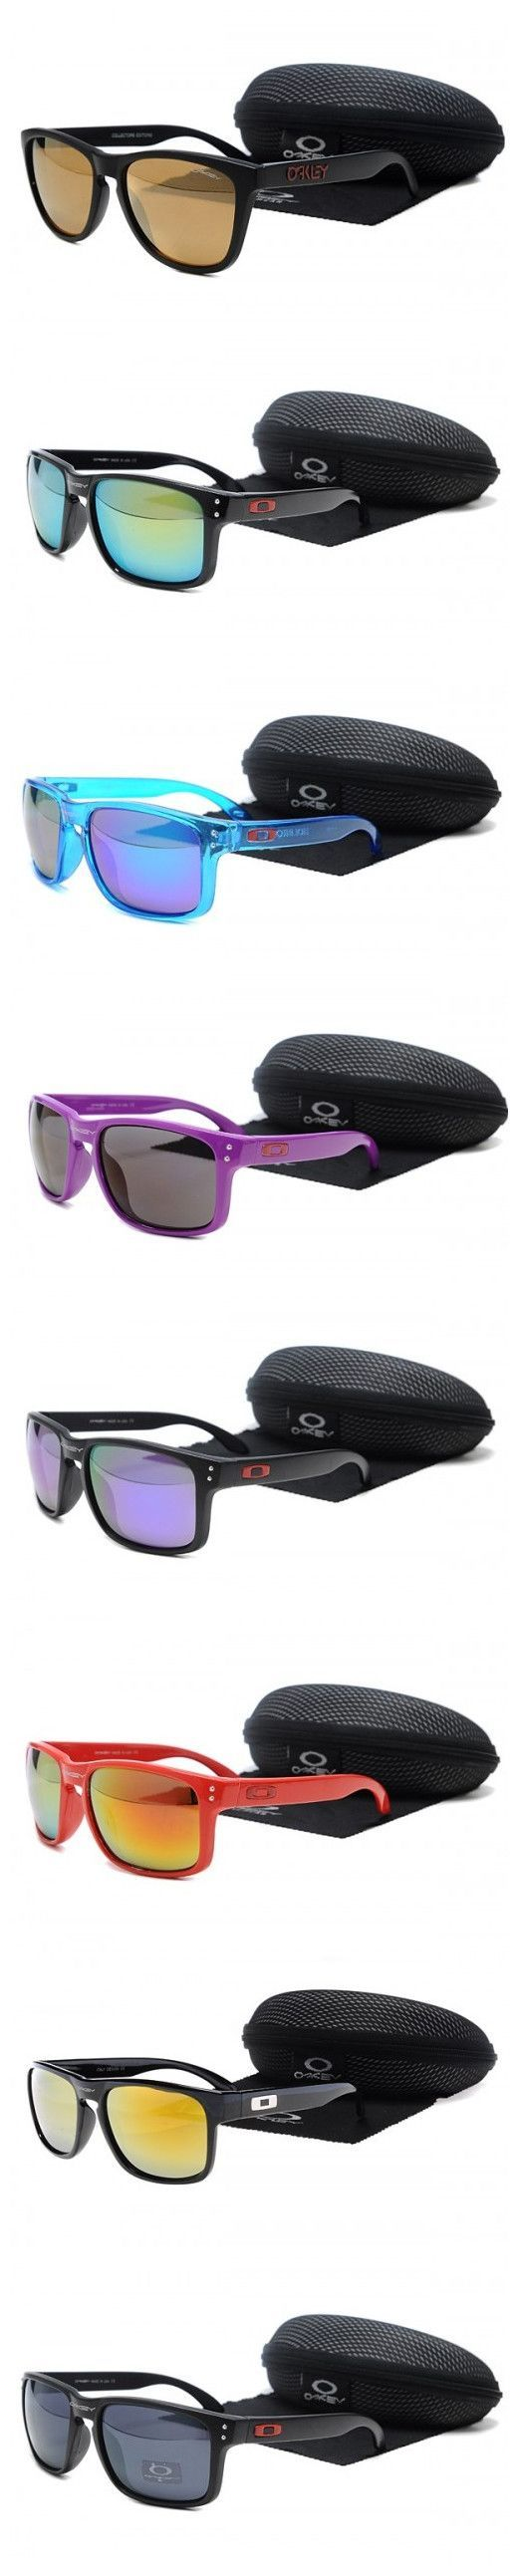 cheap discount oakley sunglasses  Sweet Potato Biscuits